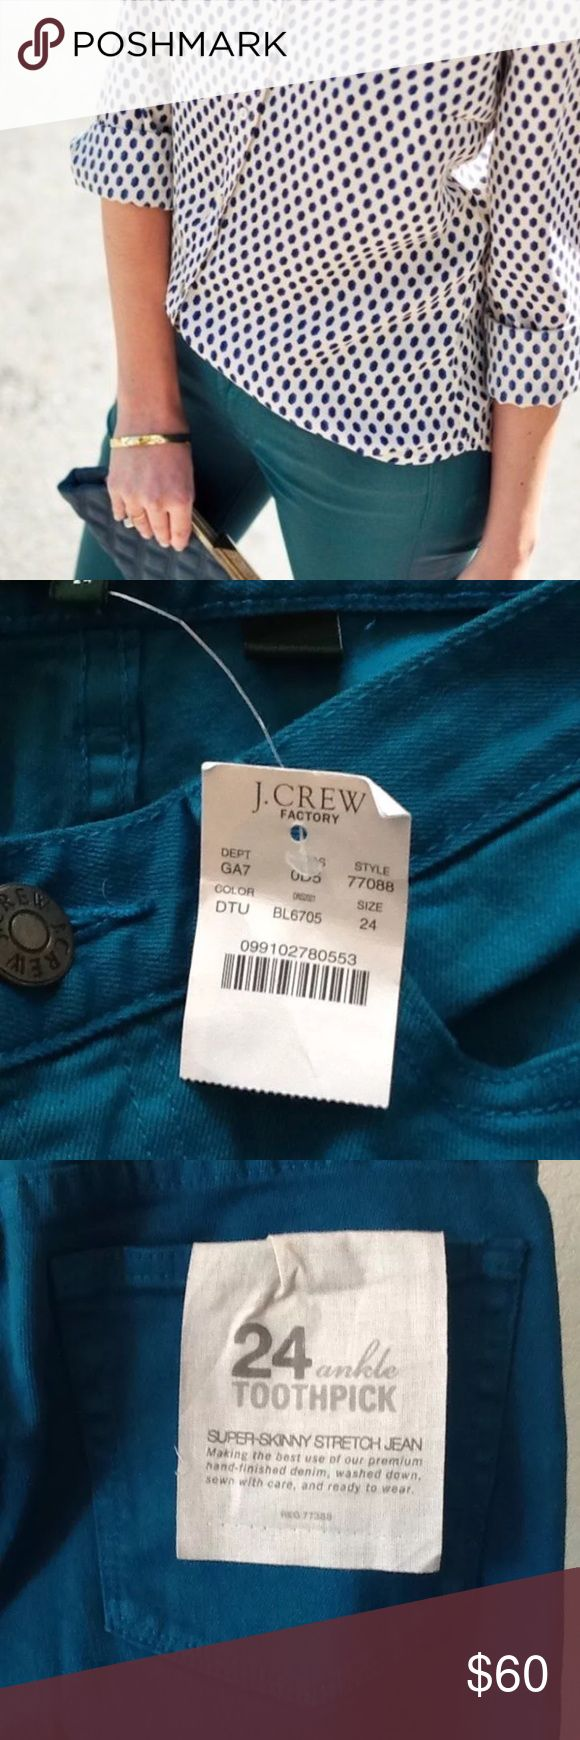 """nwt//j. crew factory•toothpick ankle skinnies 🛍: j. crew factory ▫️super skinny stretch toothpick ankle jean - sold out online! ▫️garment dyed teal color; color code on tag is DTU - color truest in last photo ▫️gorgeous spring color ▫️size: 24 ▫️measurements:                  waist laying flat: 13.5""""                 inseam: 27""""                 rise: 7"""" ▫️condition: new with tags •please see all pics, read description, and ask questions before purchasing  •no trades• J. Crew Factory Jeans…"""